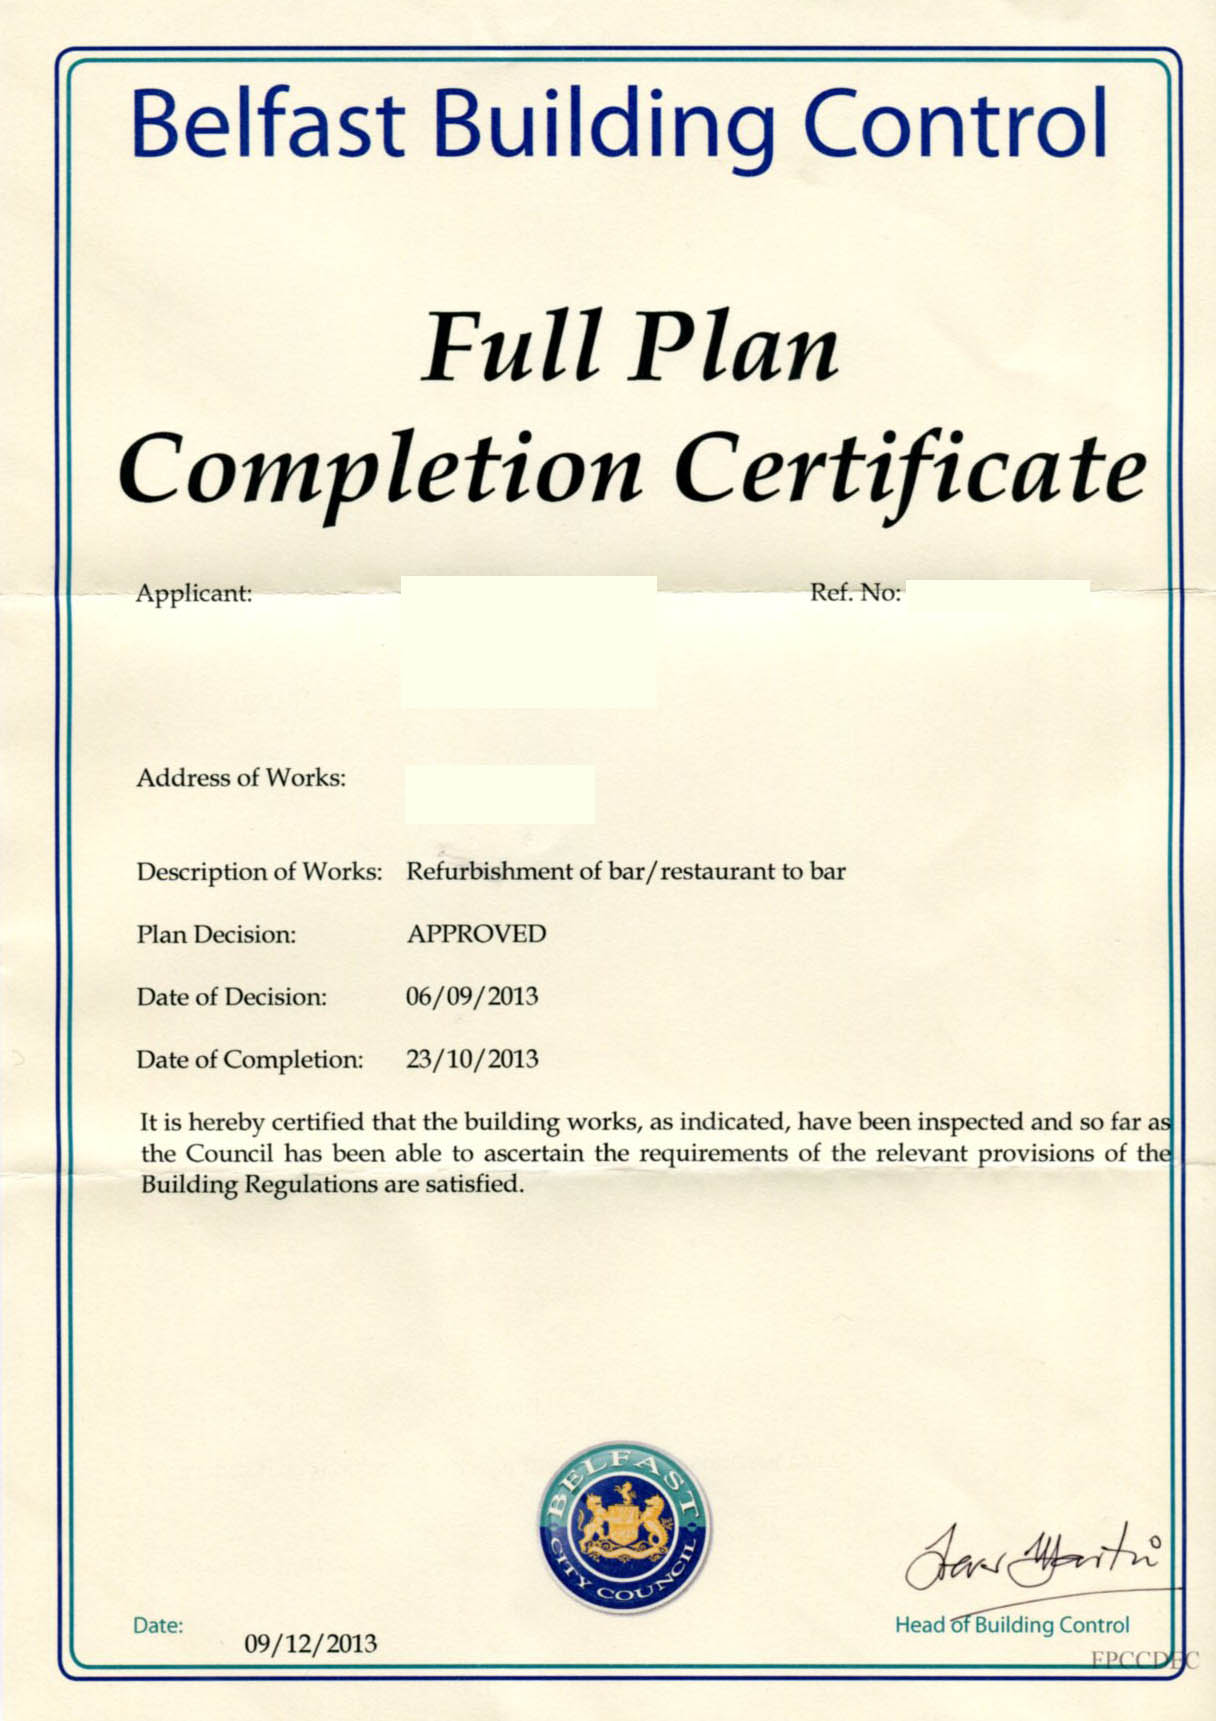 how to get building completion certificate